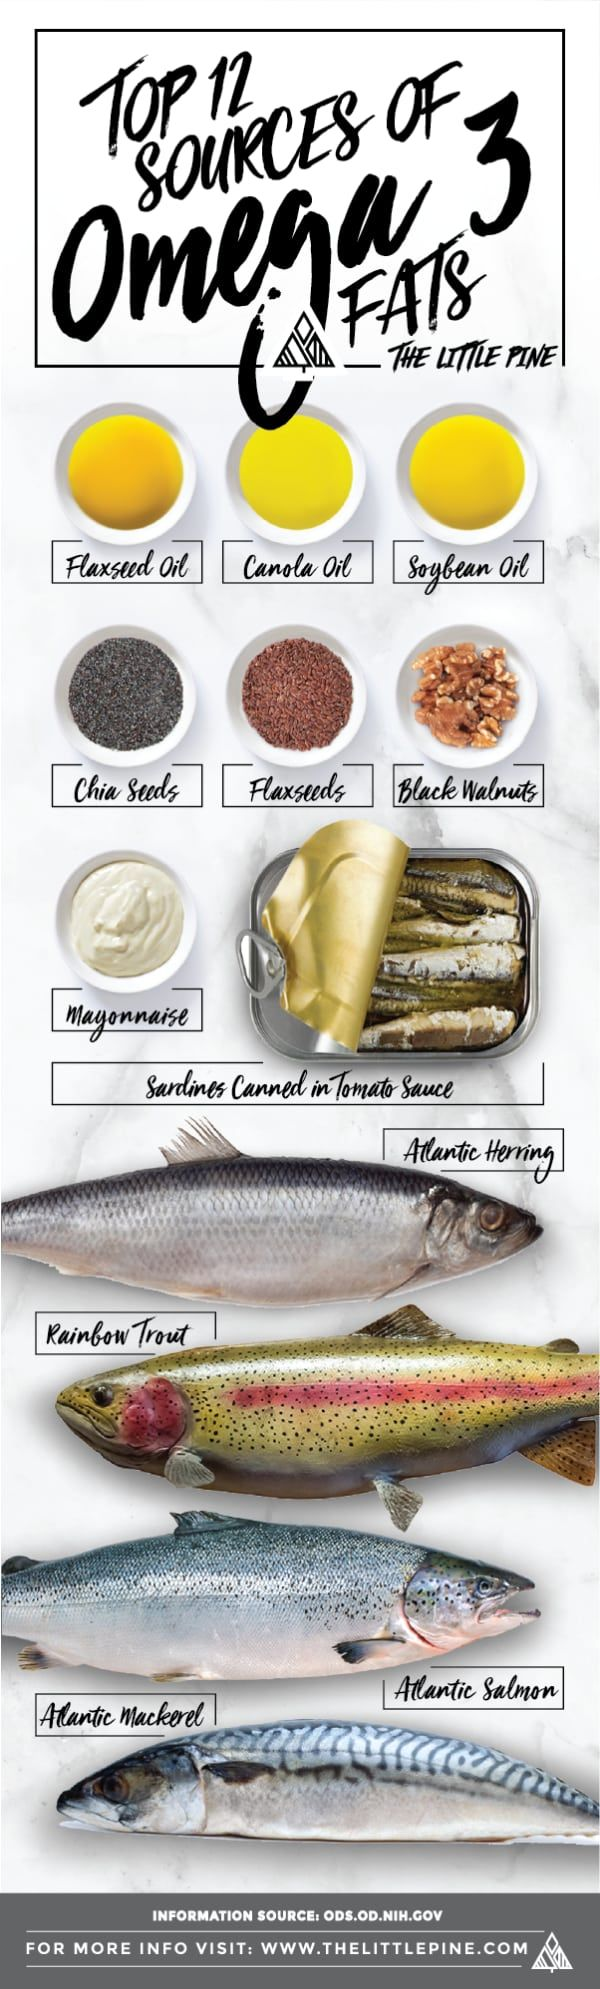 As BuzzFeed Health has reported, Americans tend to get more than enough saturated fat (the kind of fat in meat and dairy), but not nearly enough unsaturated fat from fish, nuts, seeds, and other plant-based sources. Unsaturated fats are really good for yo